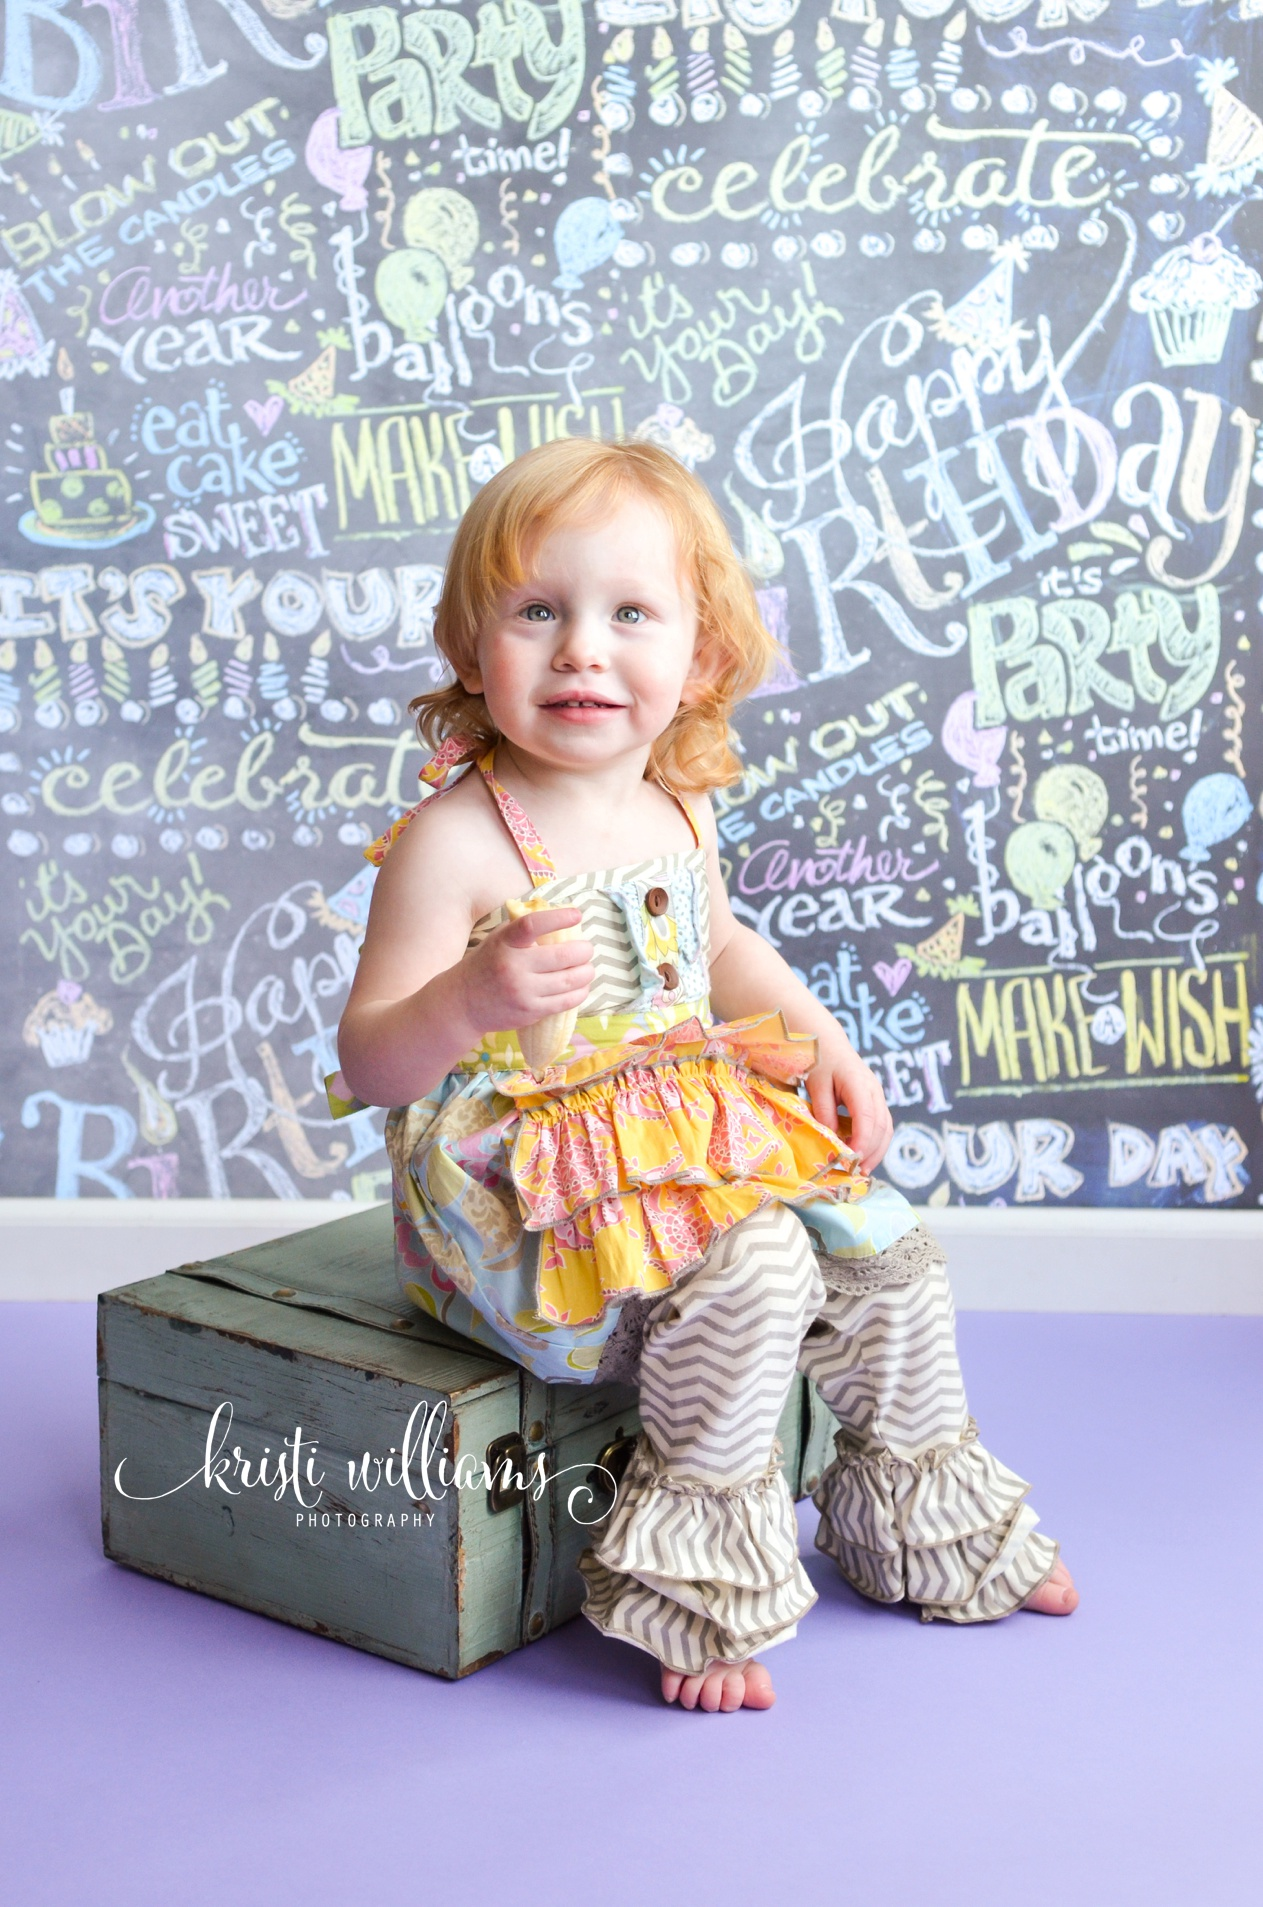 2 year old cake smash birthday photography by Kristi Williams Photography Colorado Springs